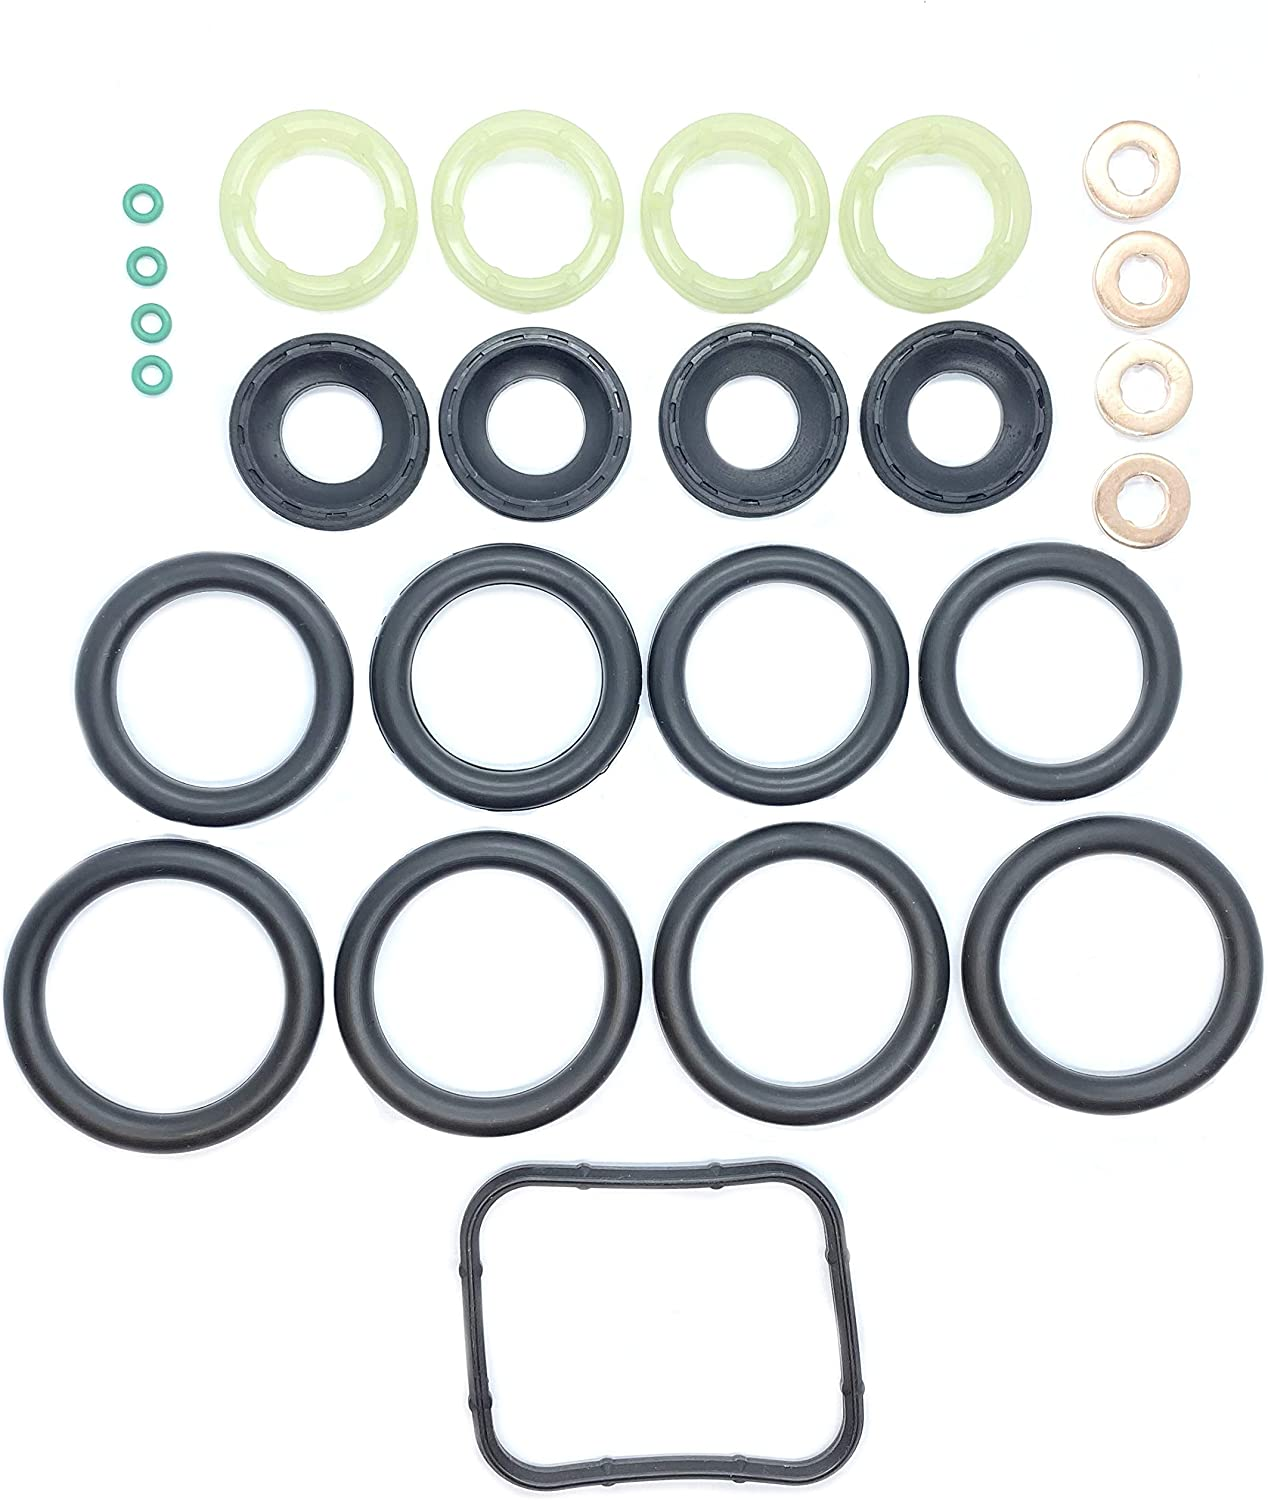 WASHER FUEL INJECTOR SEAL ORING SET FITS 1.6 TDCi//HDi MANIFOLD SEAL